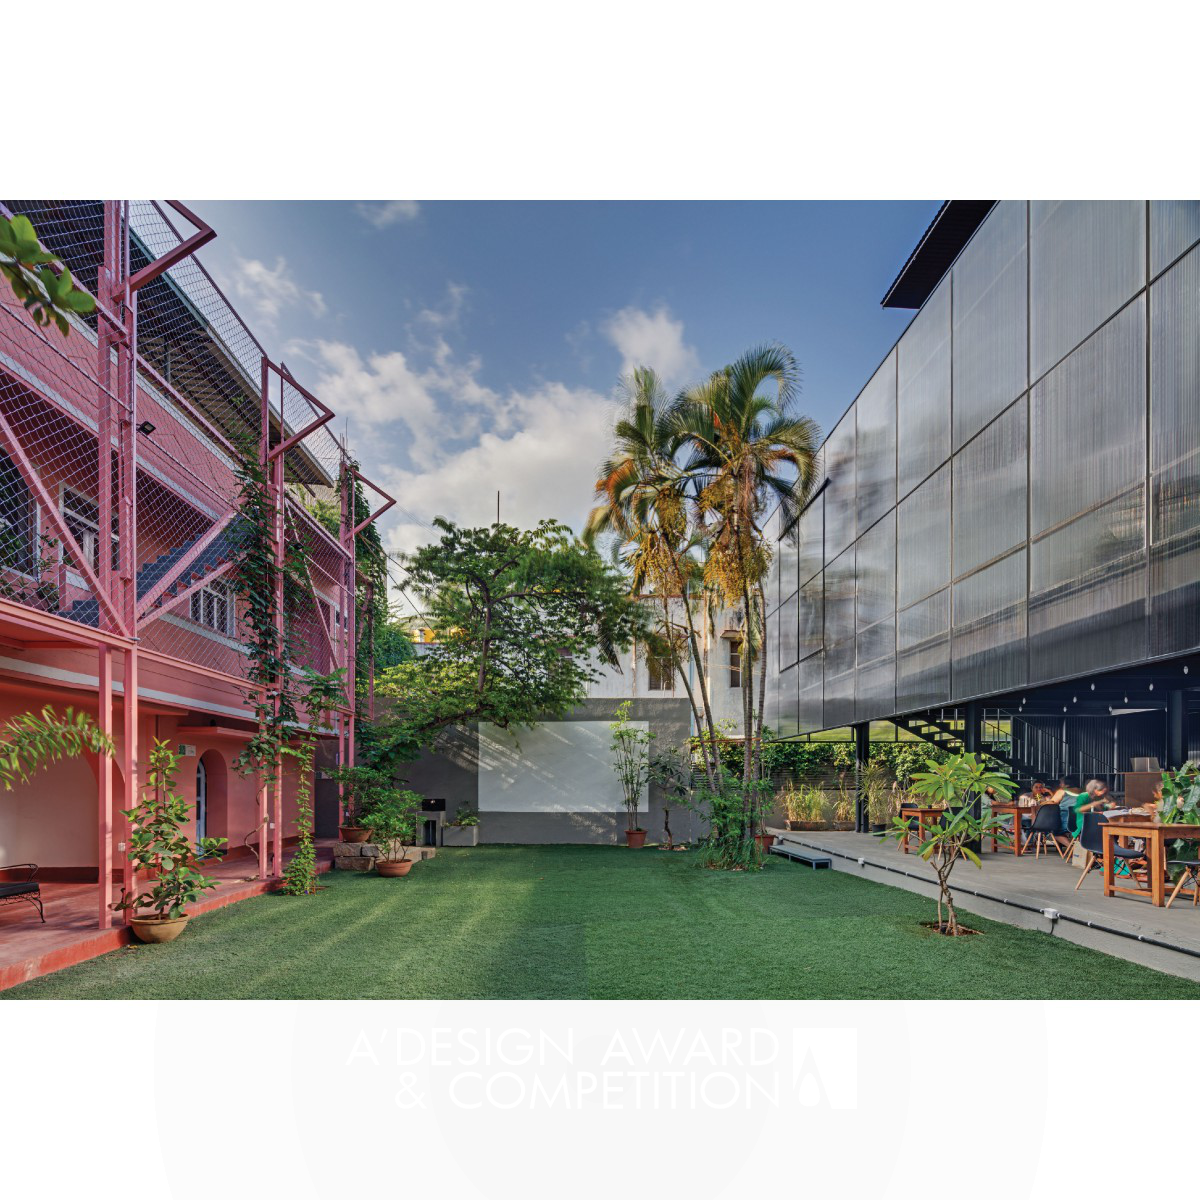 The Courtyard Recreational Space